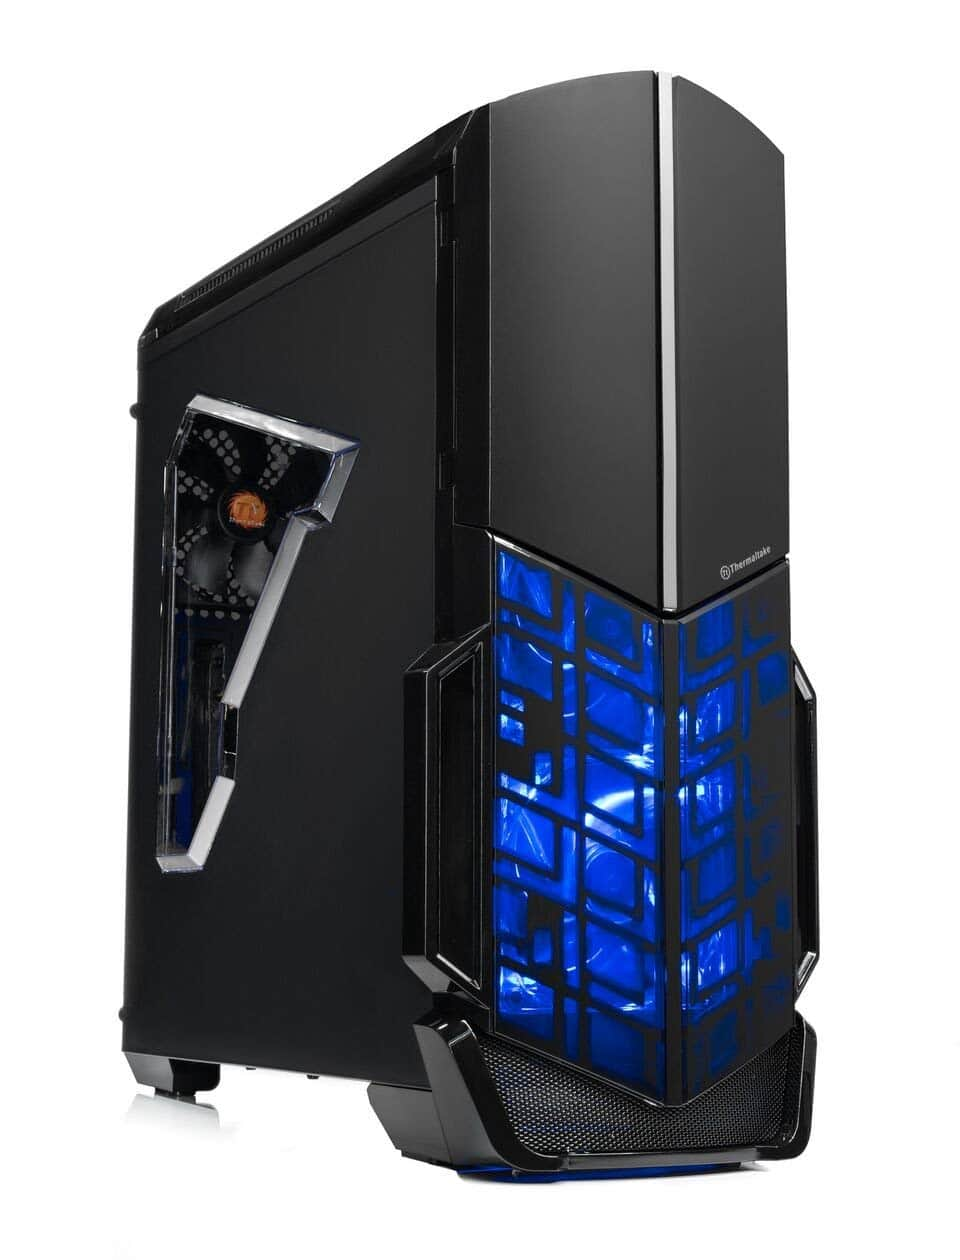 SkyTech Shadow Desktop: Ryzen 7 2700, 8GB DDR4, 1TB HDD, RTX 2070, Win 10 $879 + Free Shipping @ Walmart